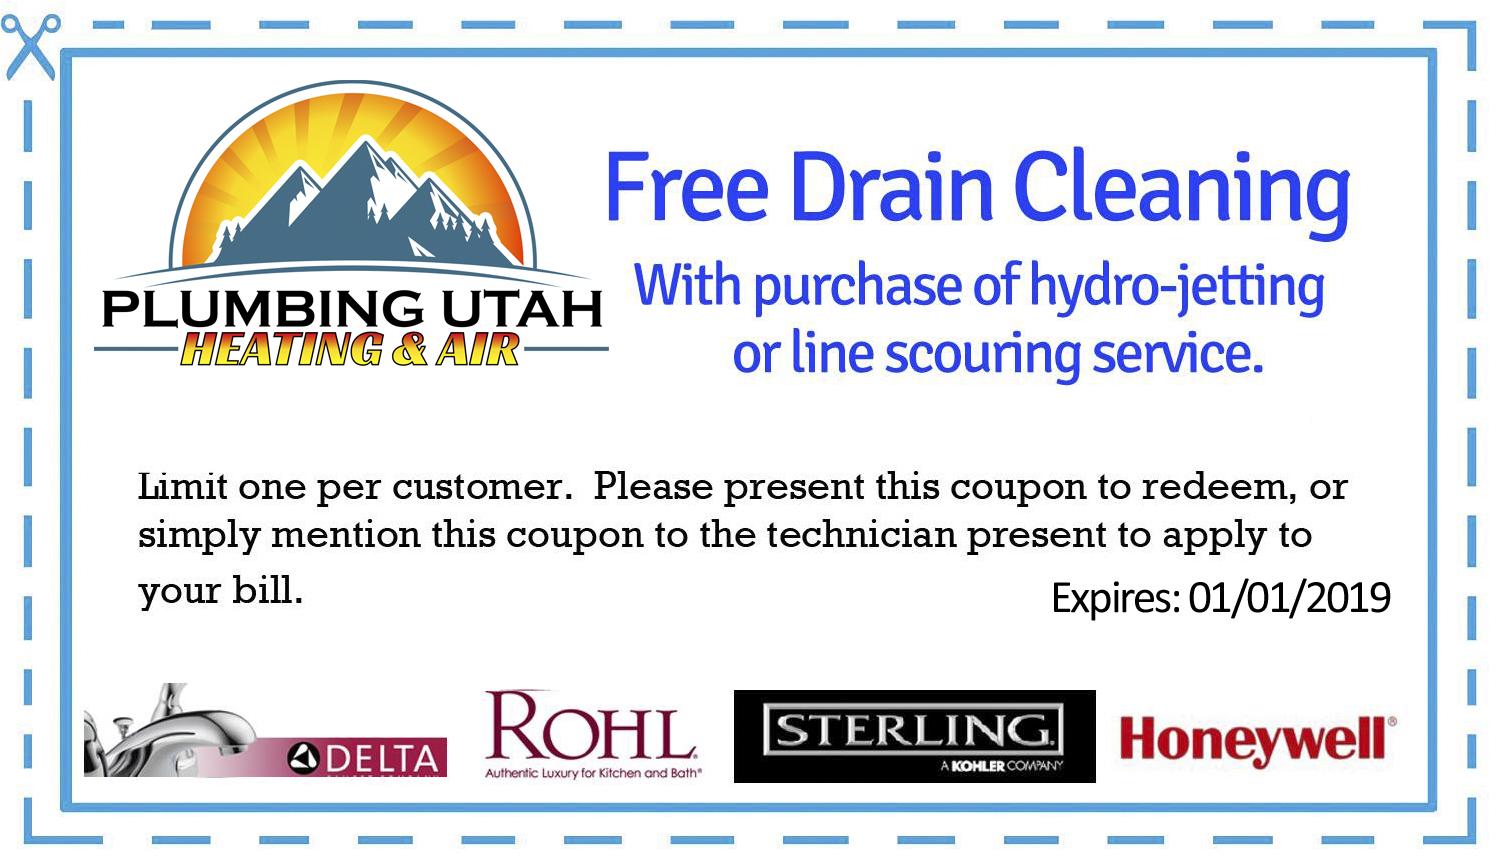 plumbing-utah-heating-air-free-drain-cleaning-final